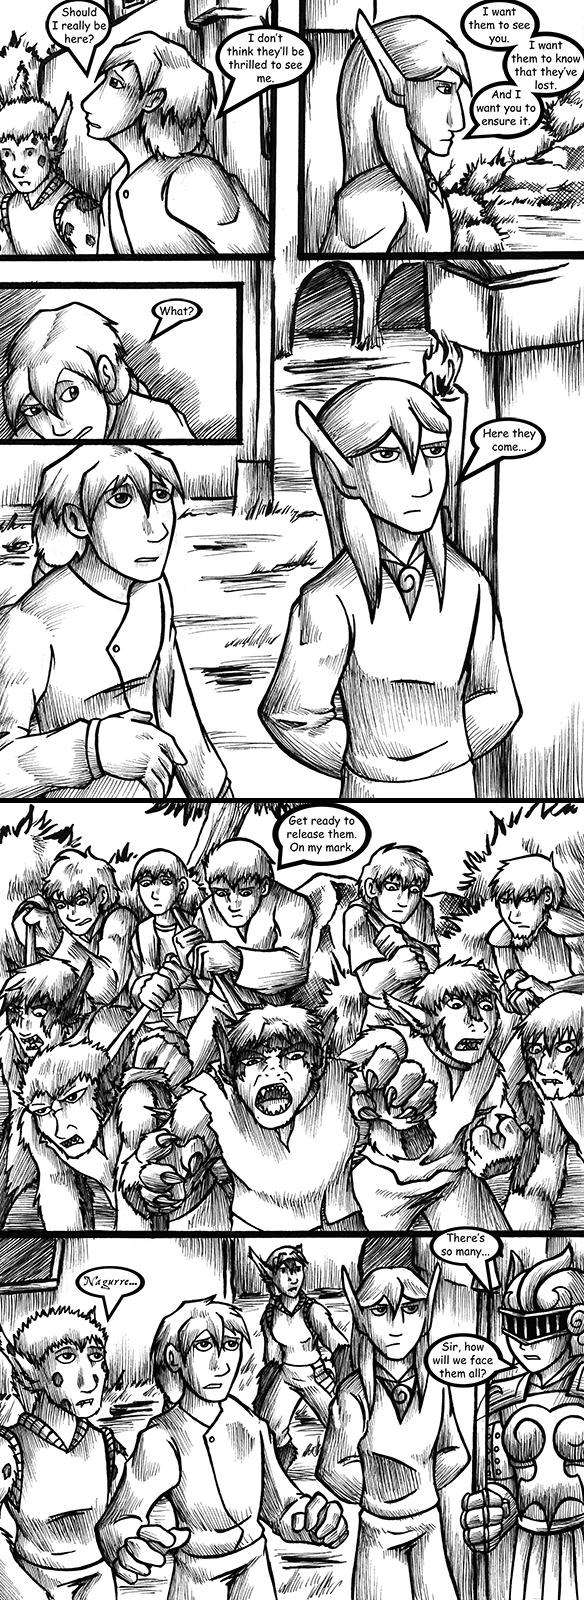 Ch 22 Page 09-10